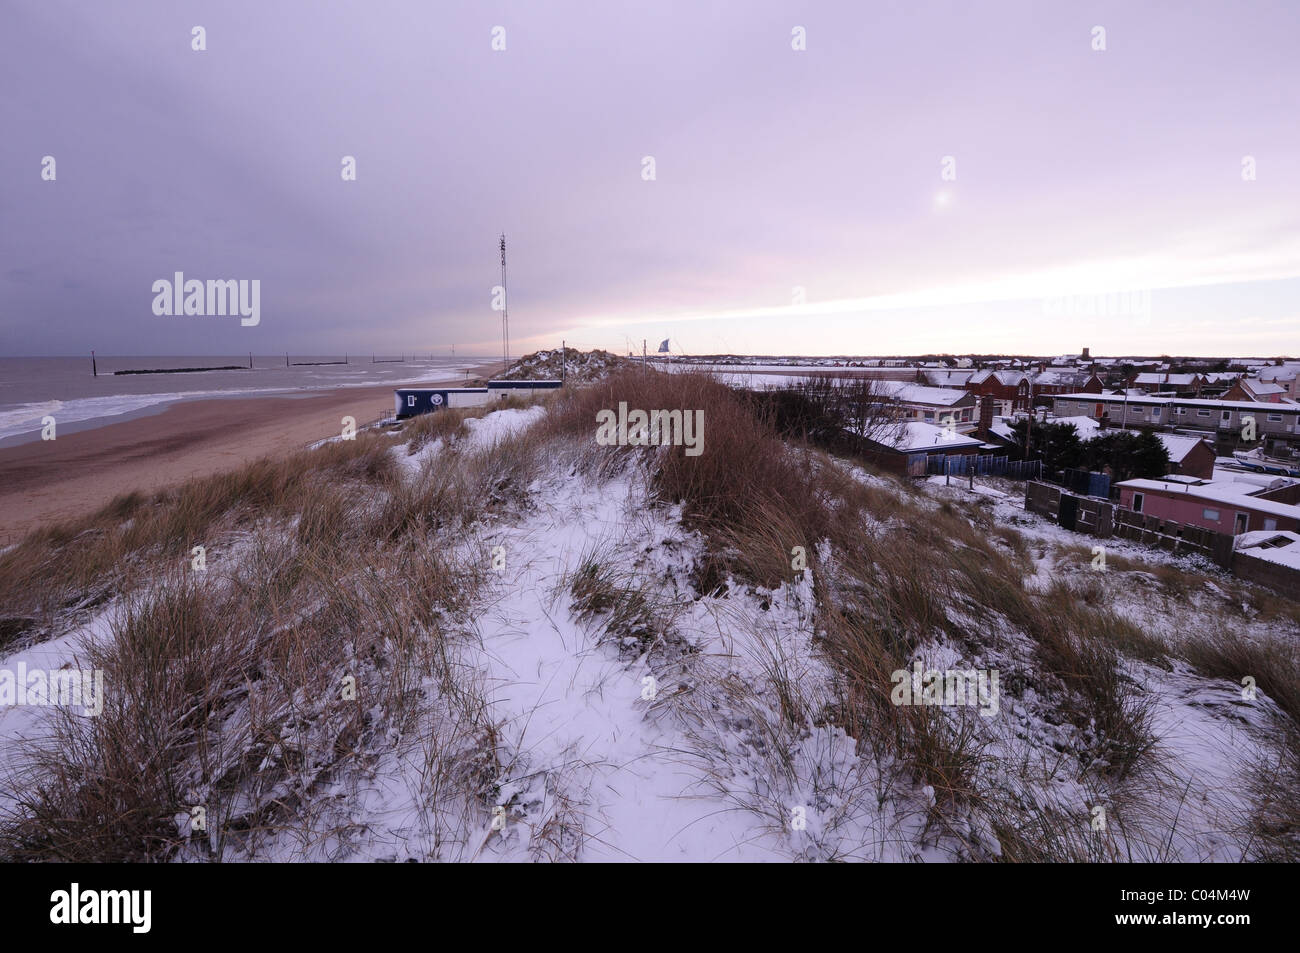 The marram dunes at Sea Palling, north-east Norfolk. - Stock Image